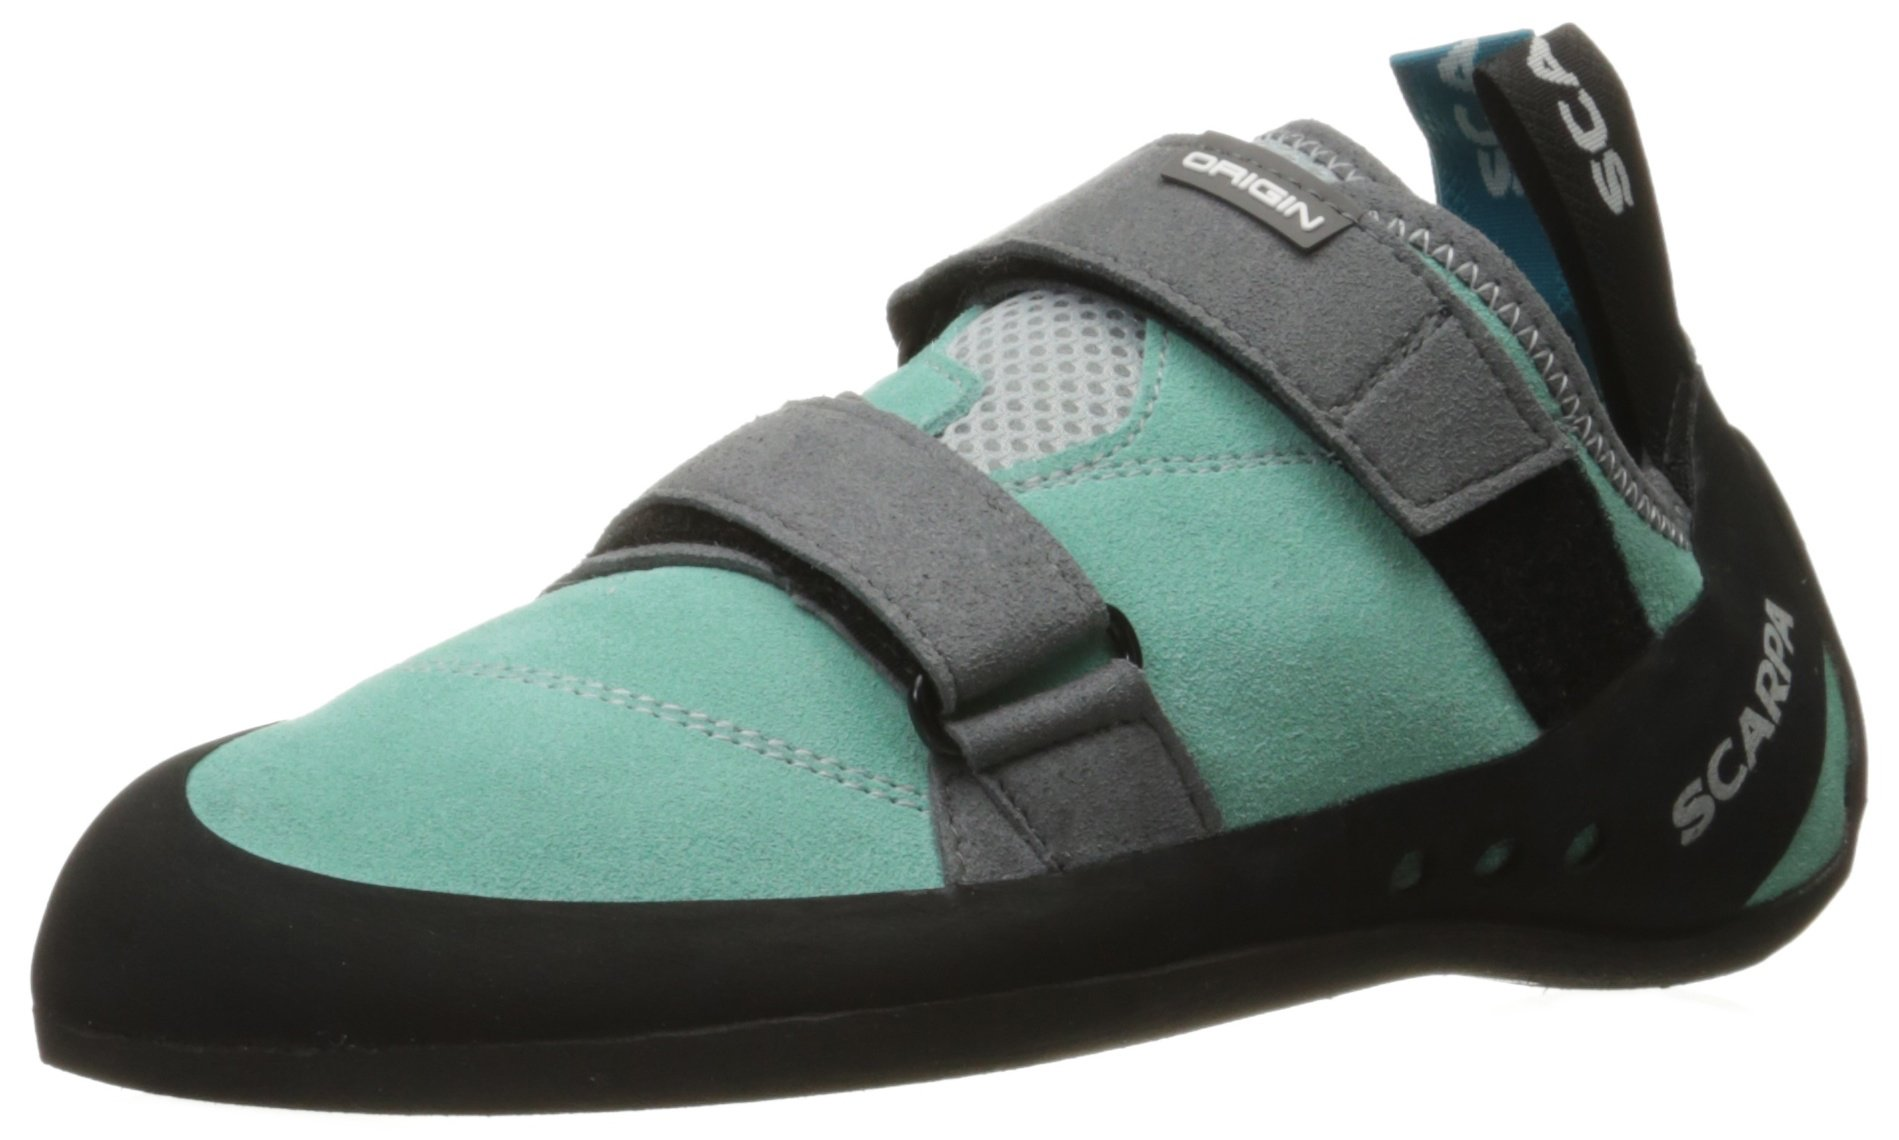 SCARPA Women's Origin Wmn Climbing Shoe, Green Blue/Smoke, 36 EU/5.5 M US